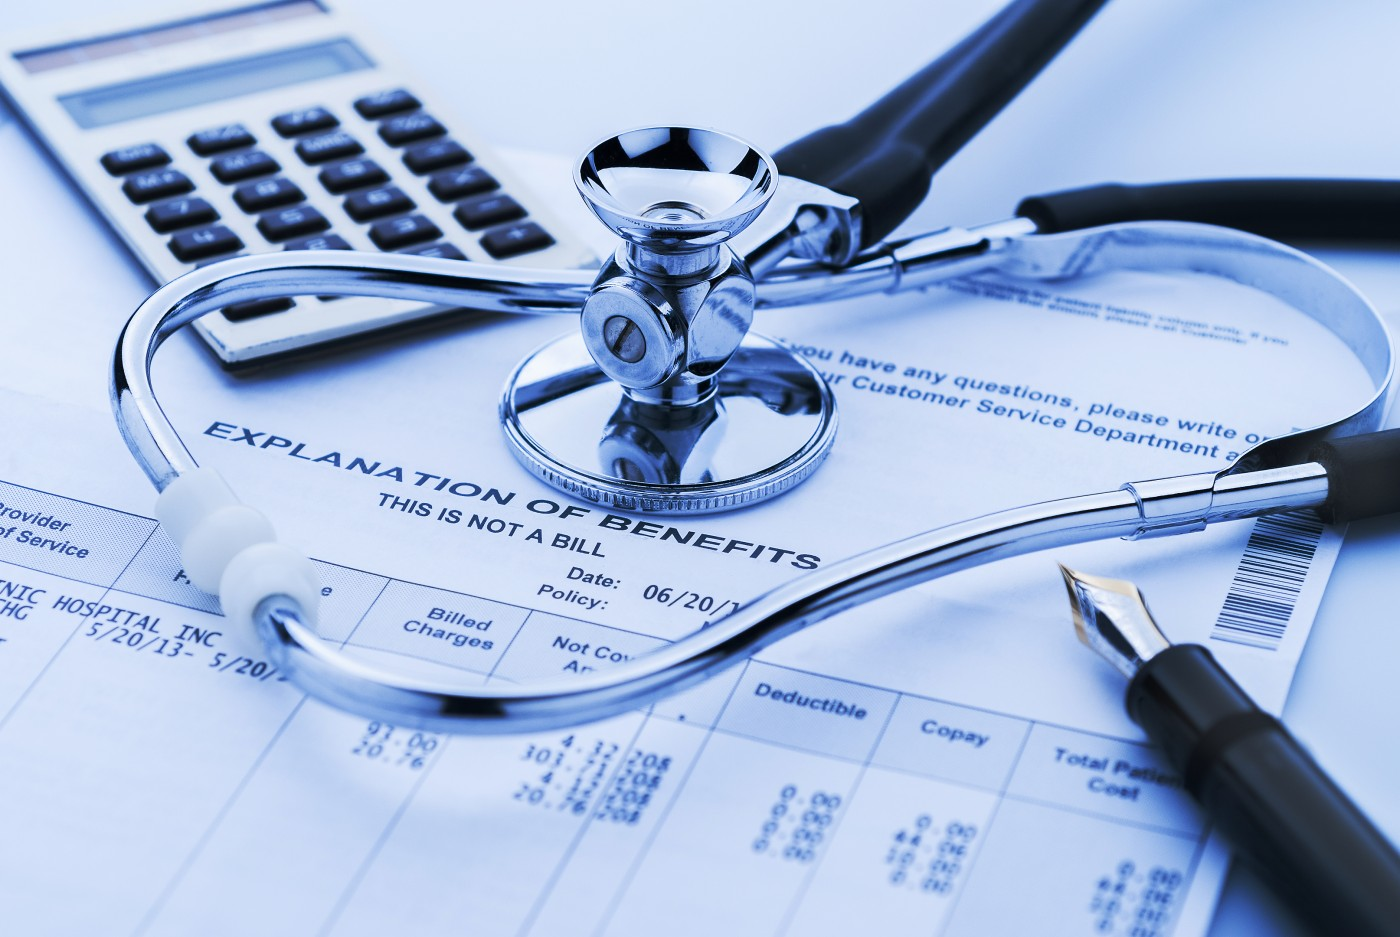 MS medicines and co-payments